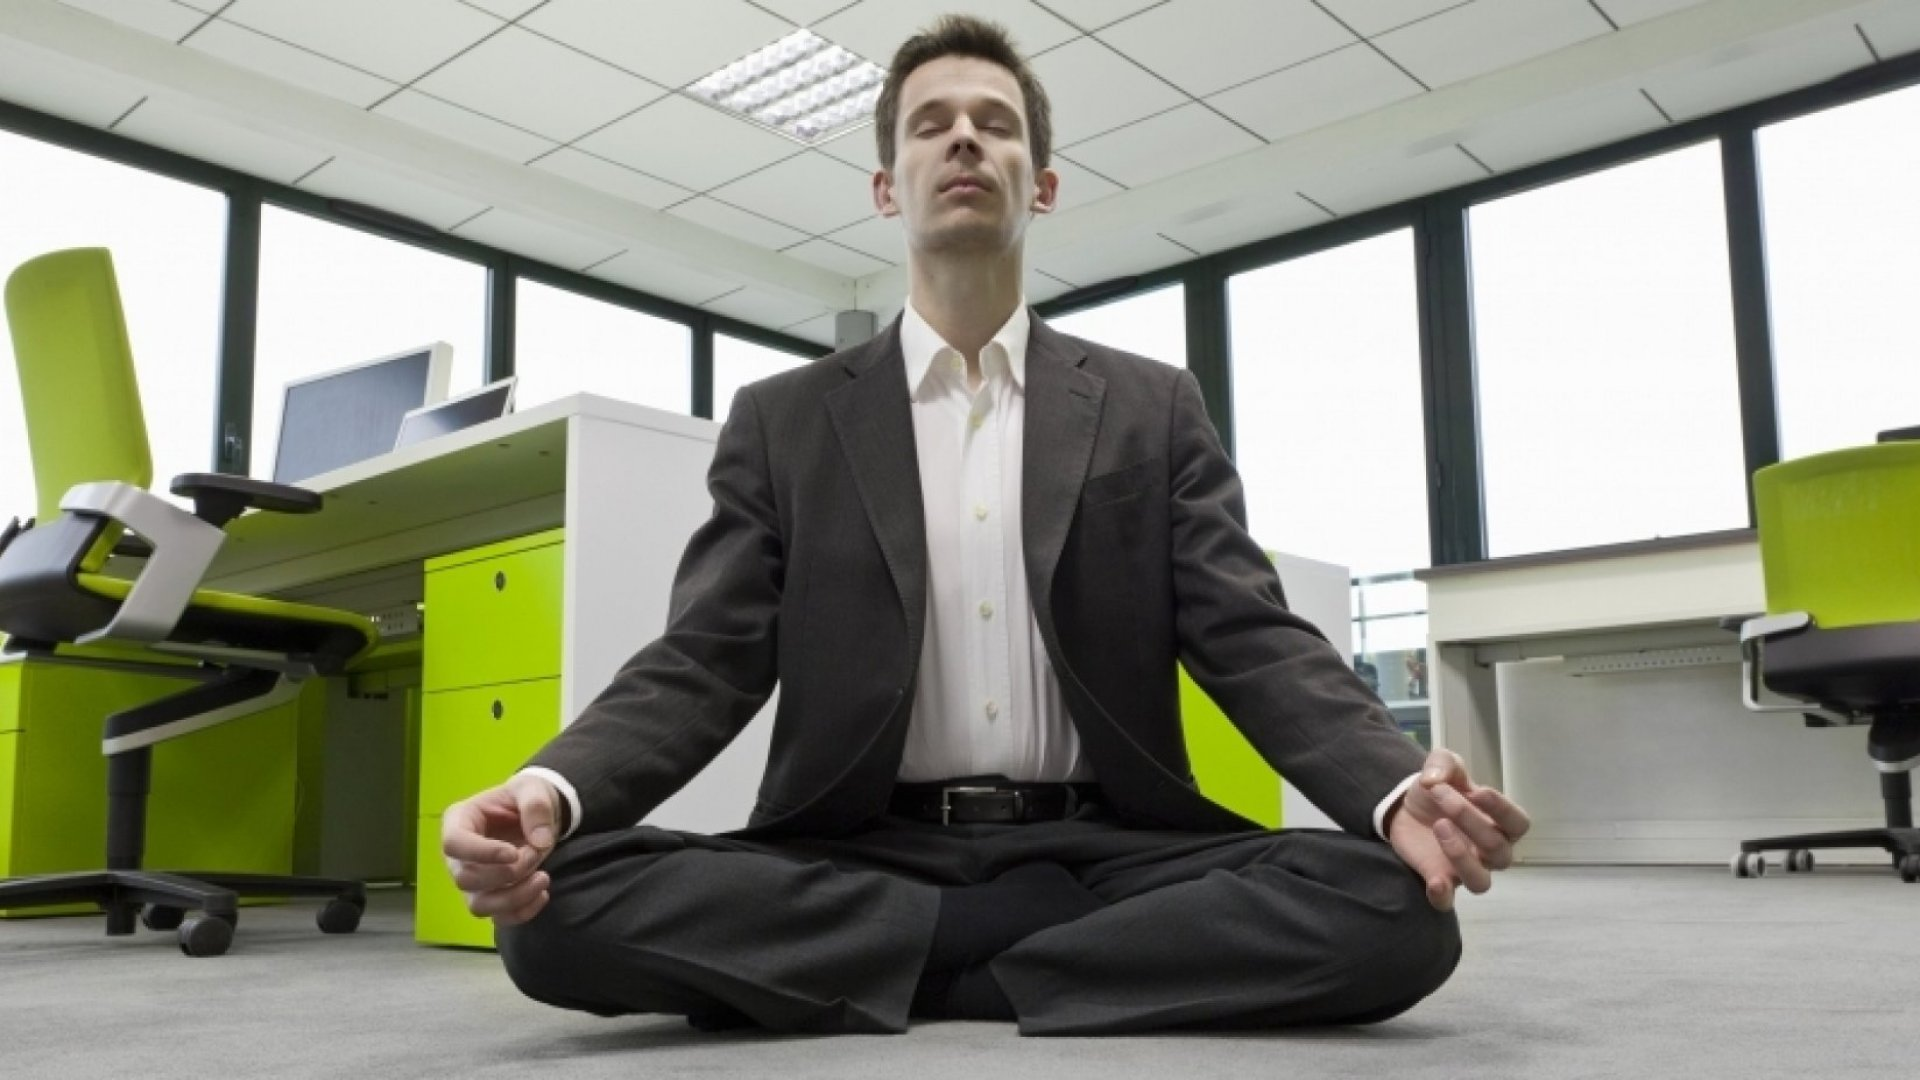 The Integration of Technology, Mindfulness, and Meditation for Entrepreneurs